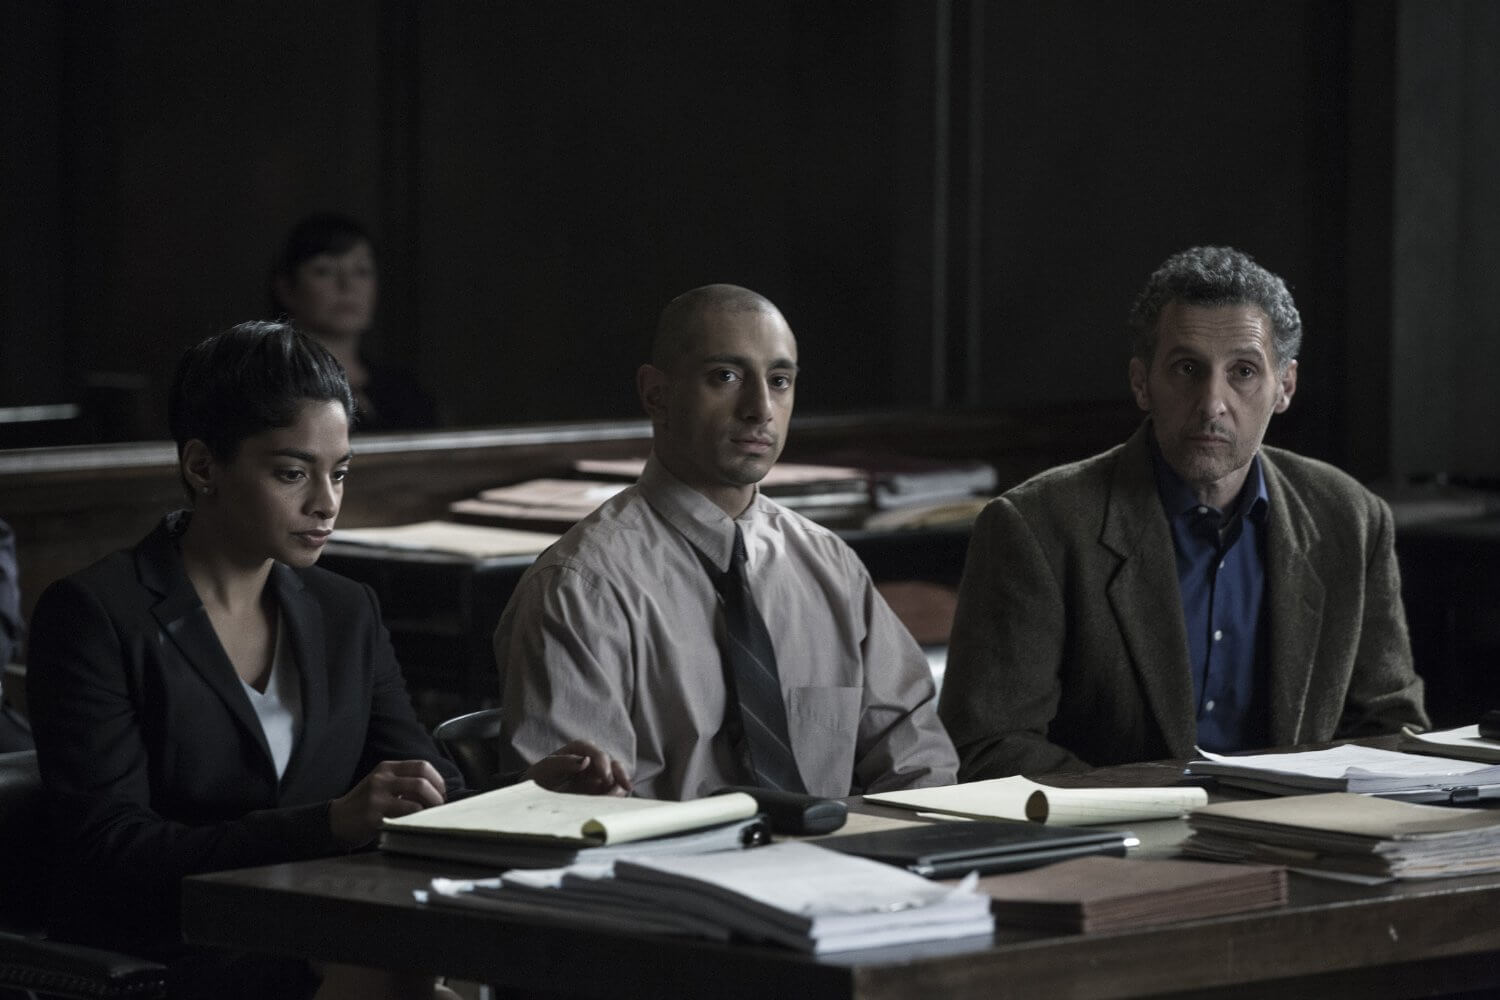 John Turturro, Amara Karan, Riz Ahmed - The Night Of